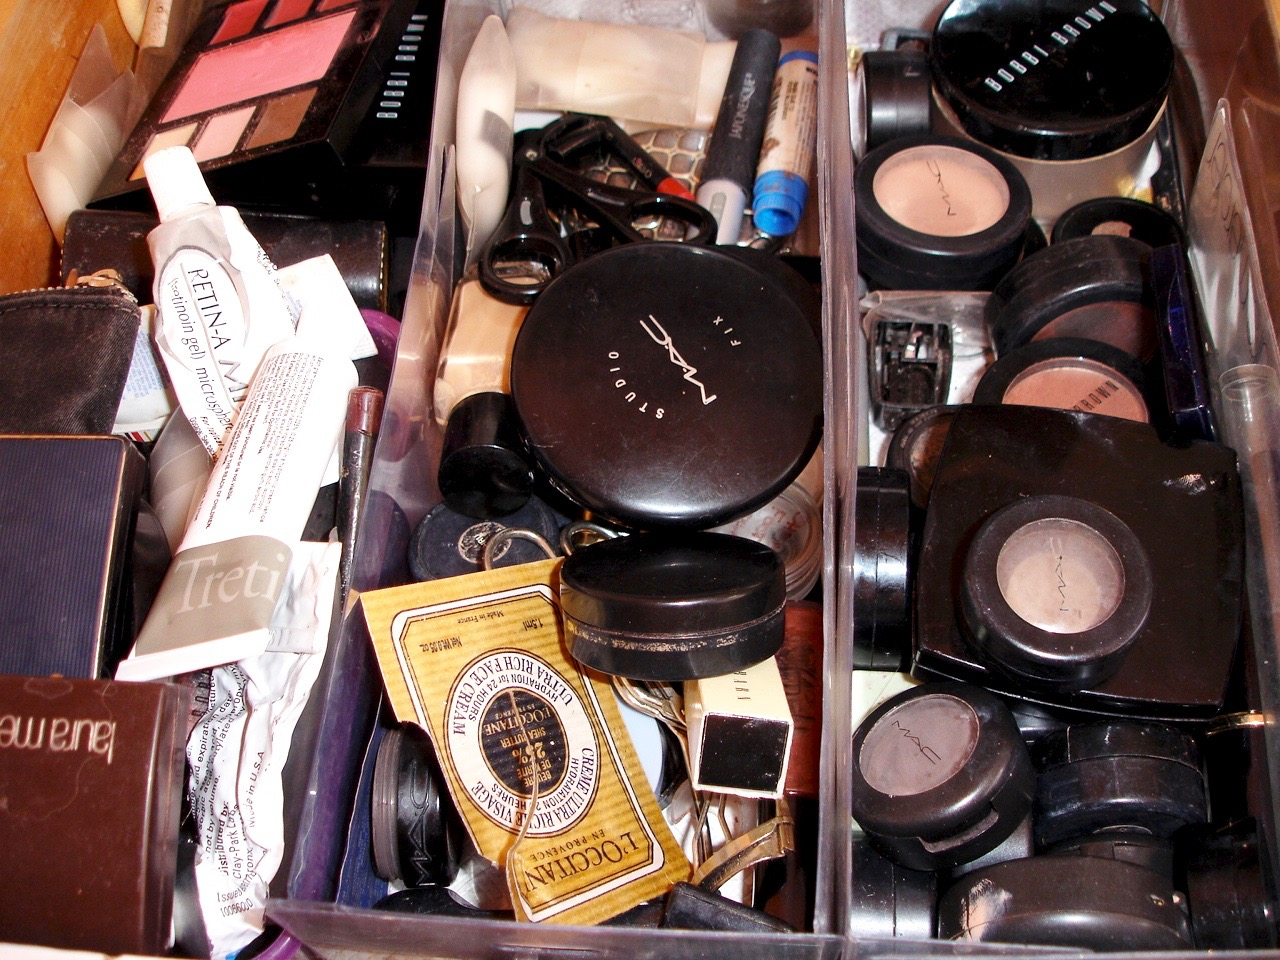 Get Rid of 100 Things ~ Get rid of old make-up and unused samples